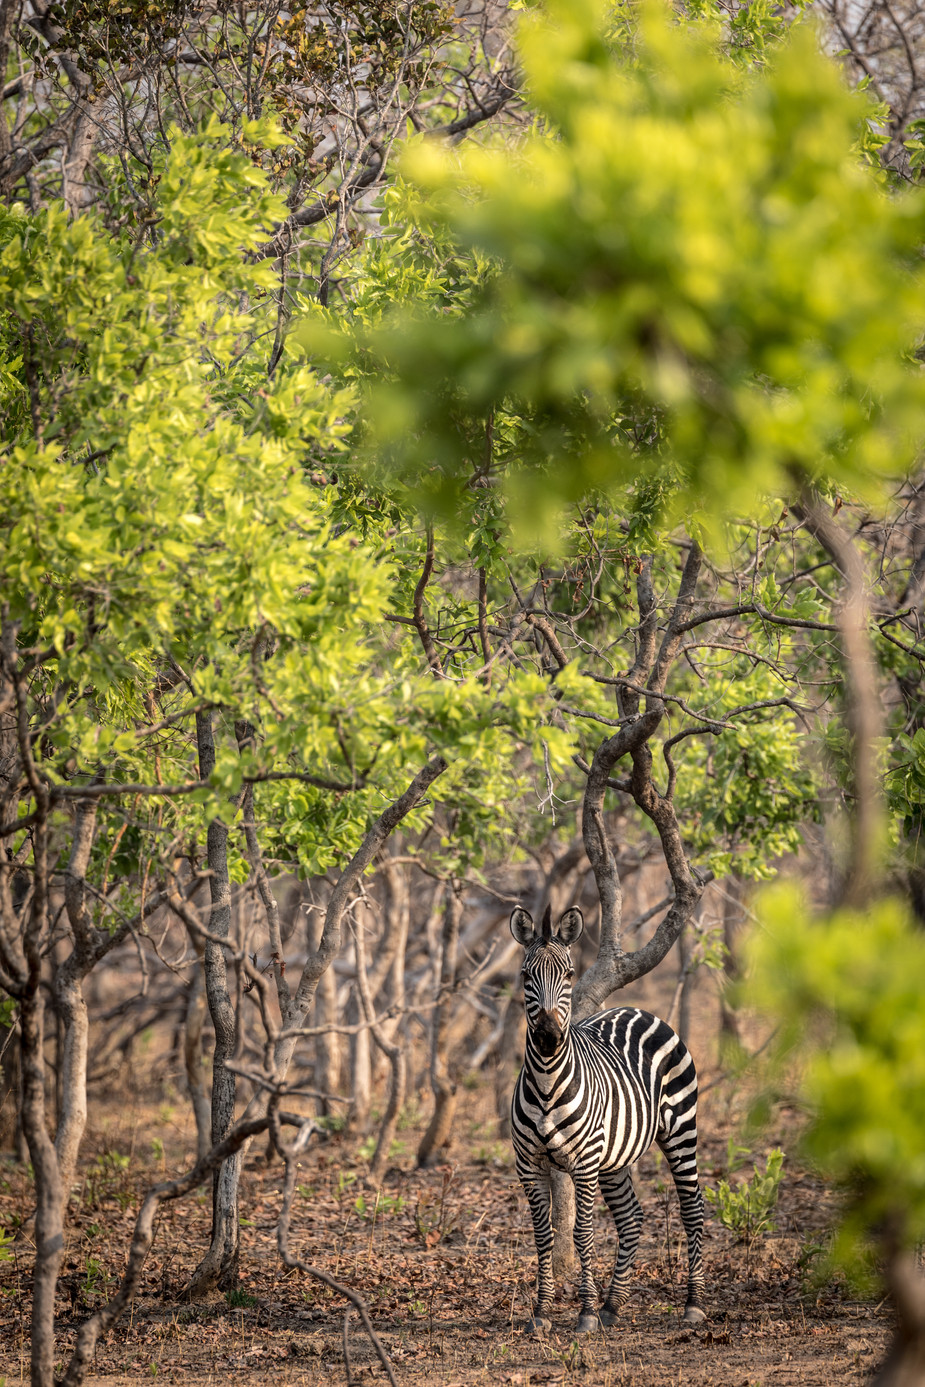 ZEBRA IN MIOMBO WOODLAND